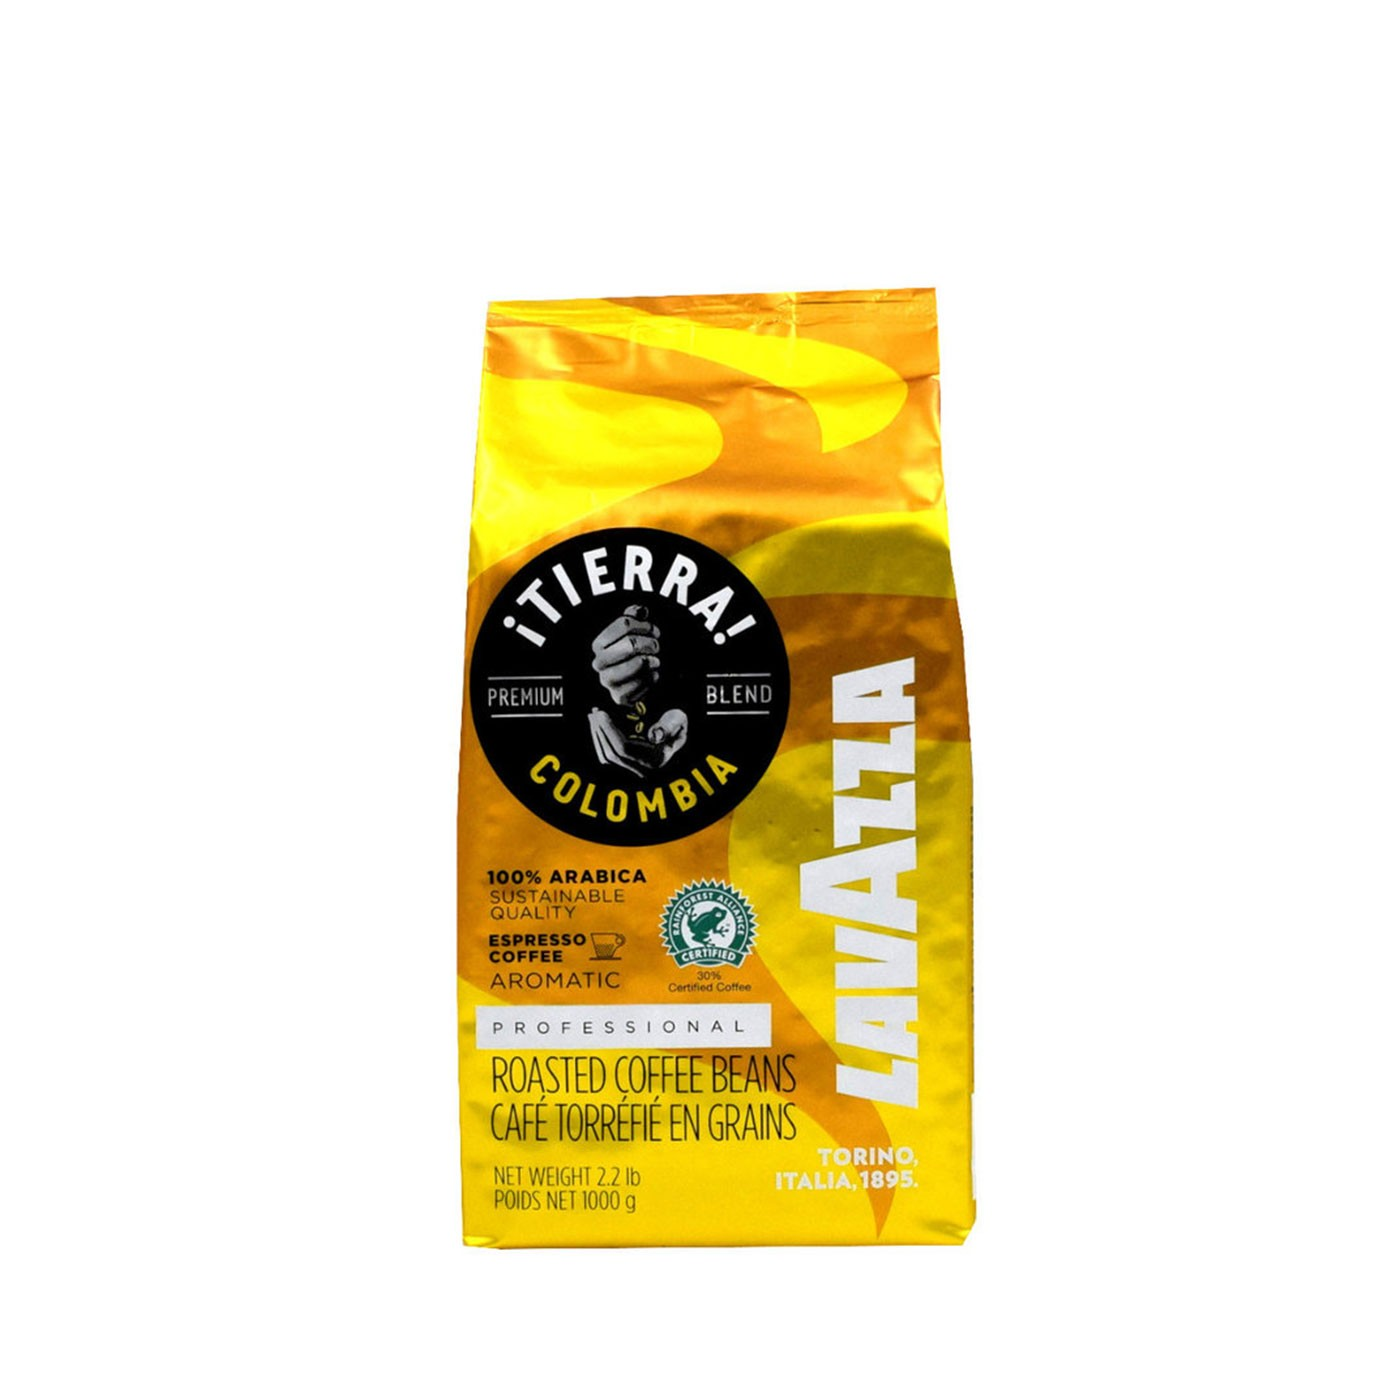 Tierra Colombia 100% Arabica Whole Beans 35.2 oz